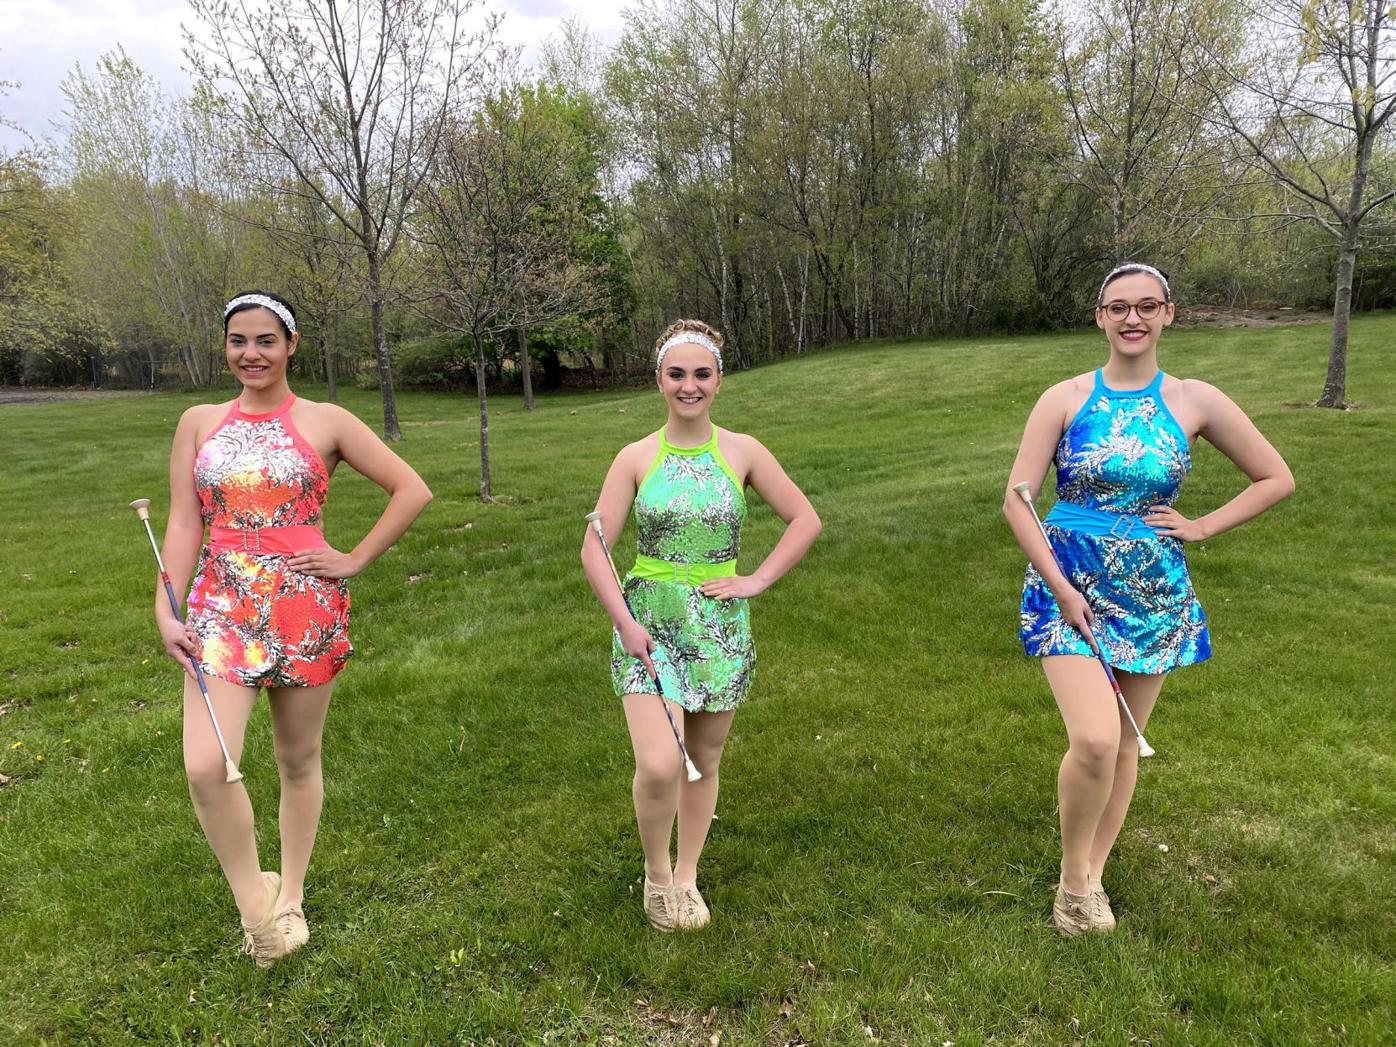 """Double """"R"""" Twirlettes graduating seniors will be featured in the group's dance recital on June 9. From left, Mia Velez, Allie Taffera and Lindsey Kausmeyer."""